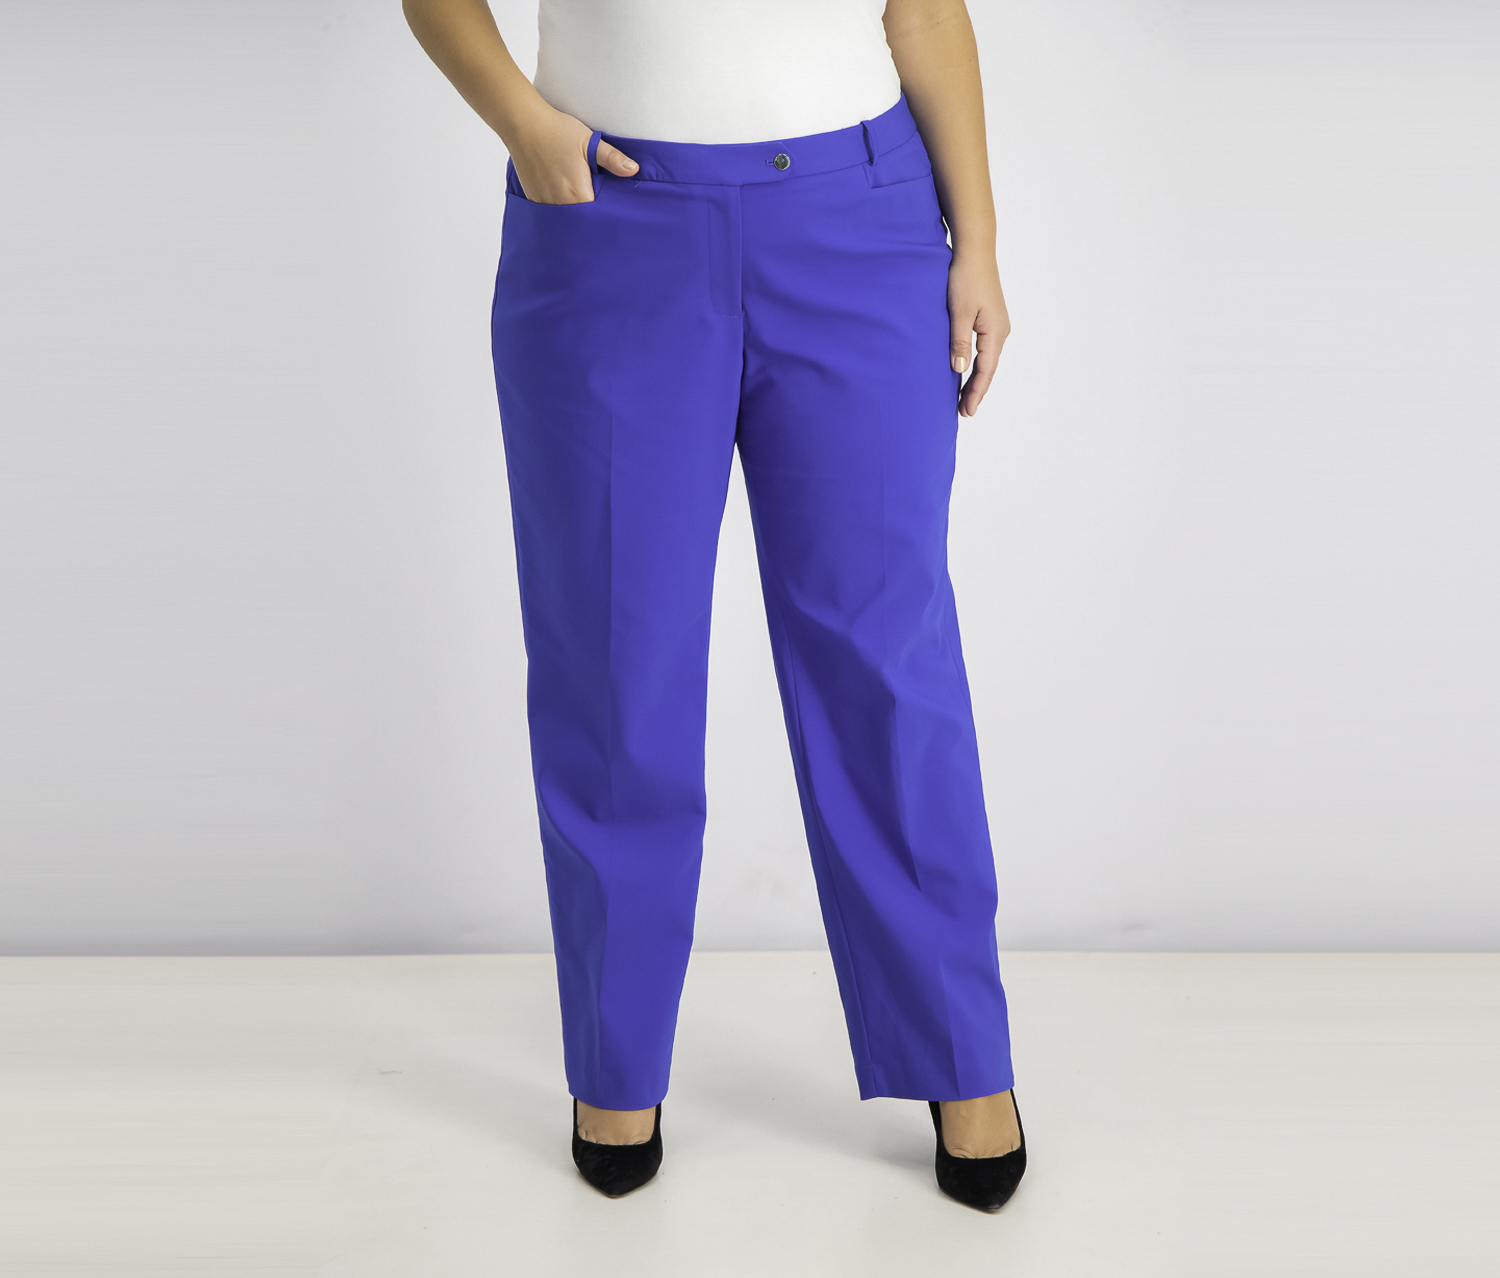 Women's Plus Size Trouser Pants, Regatta Blue